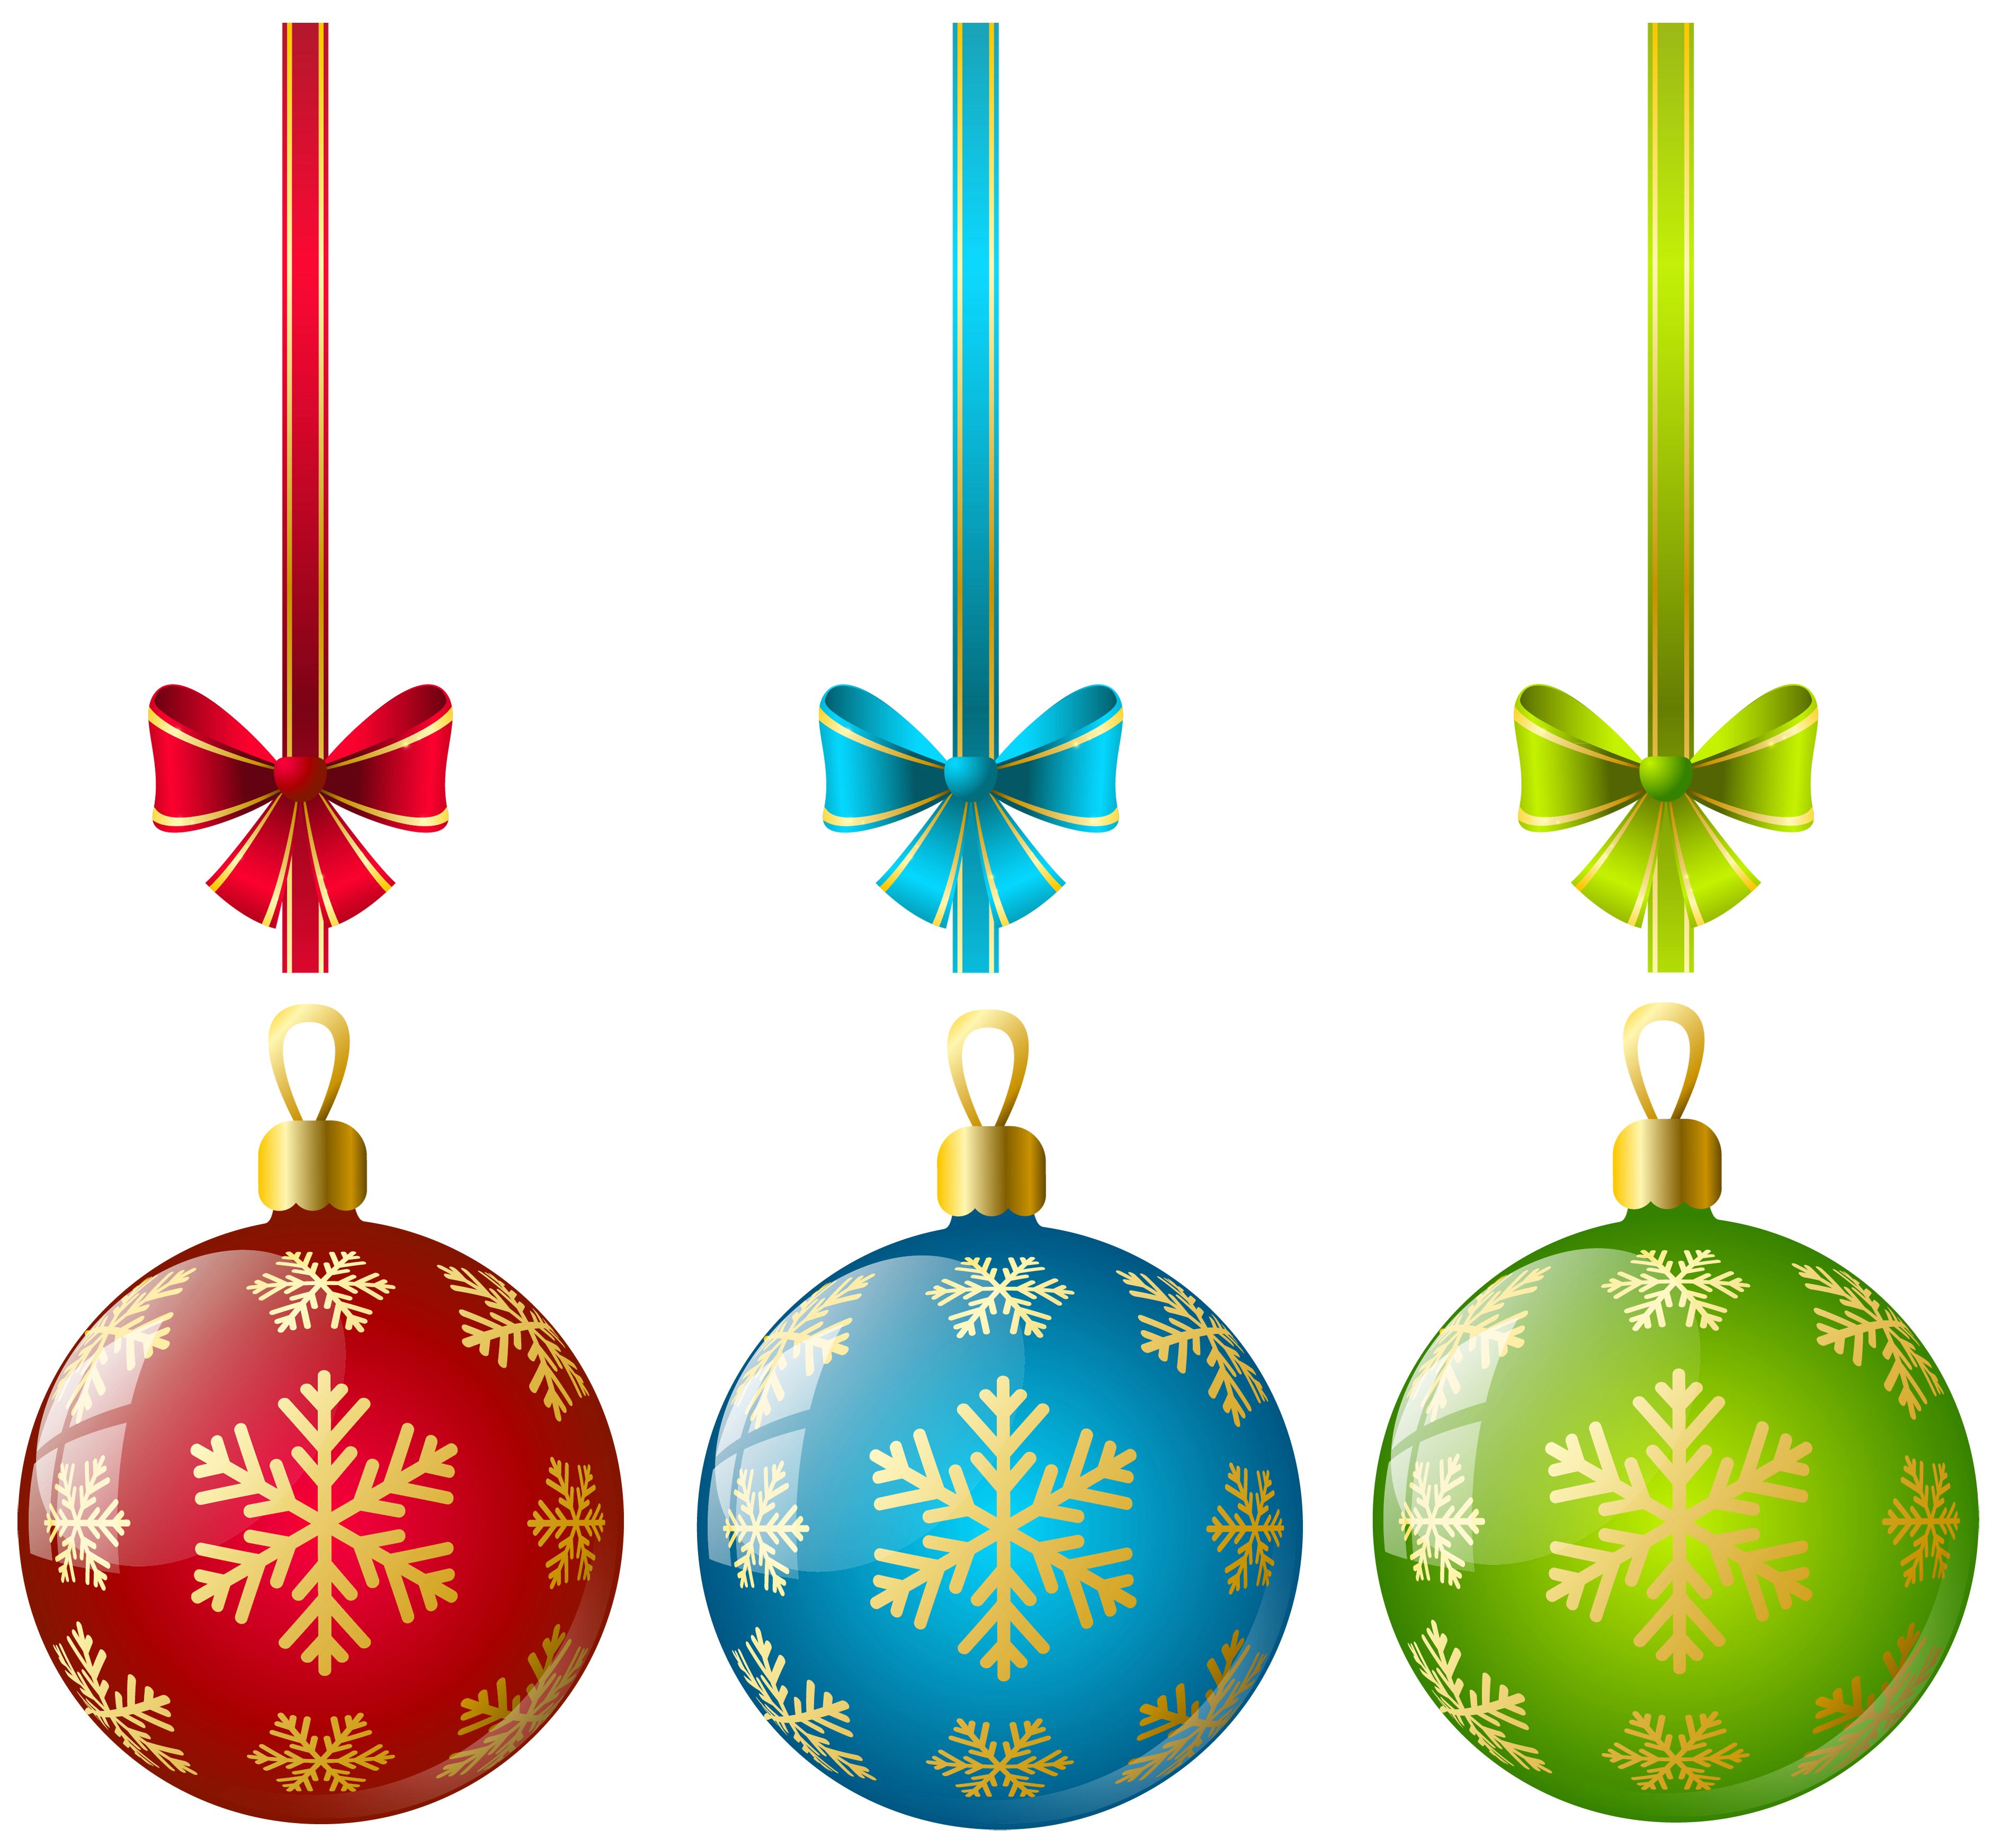 Christmas Ornaments clipart #1, Download drawings